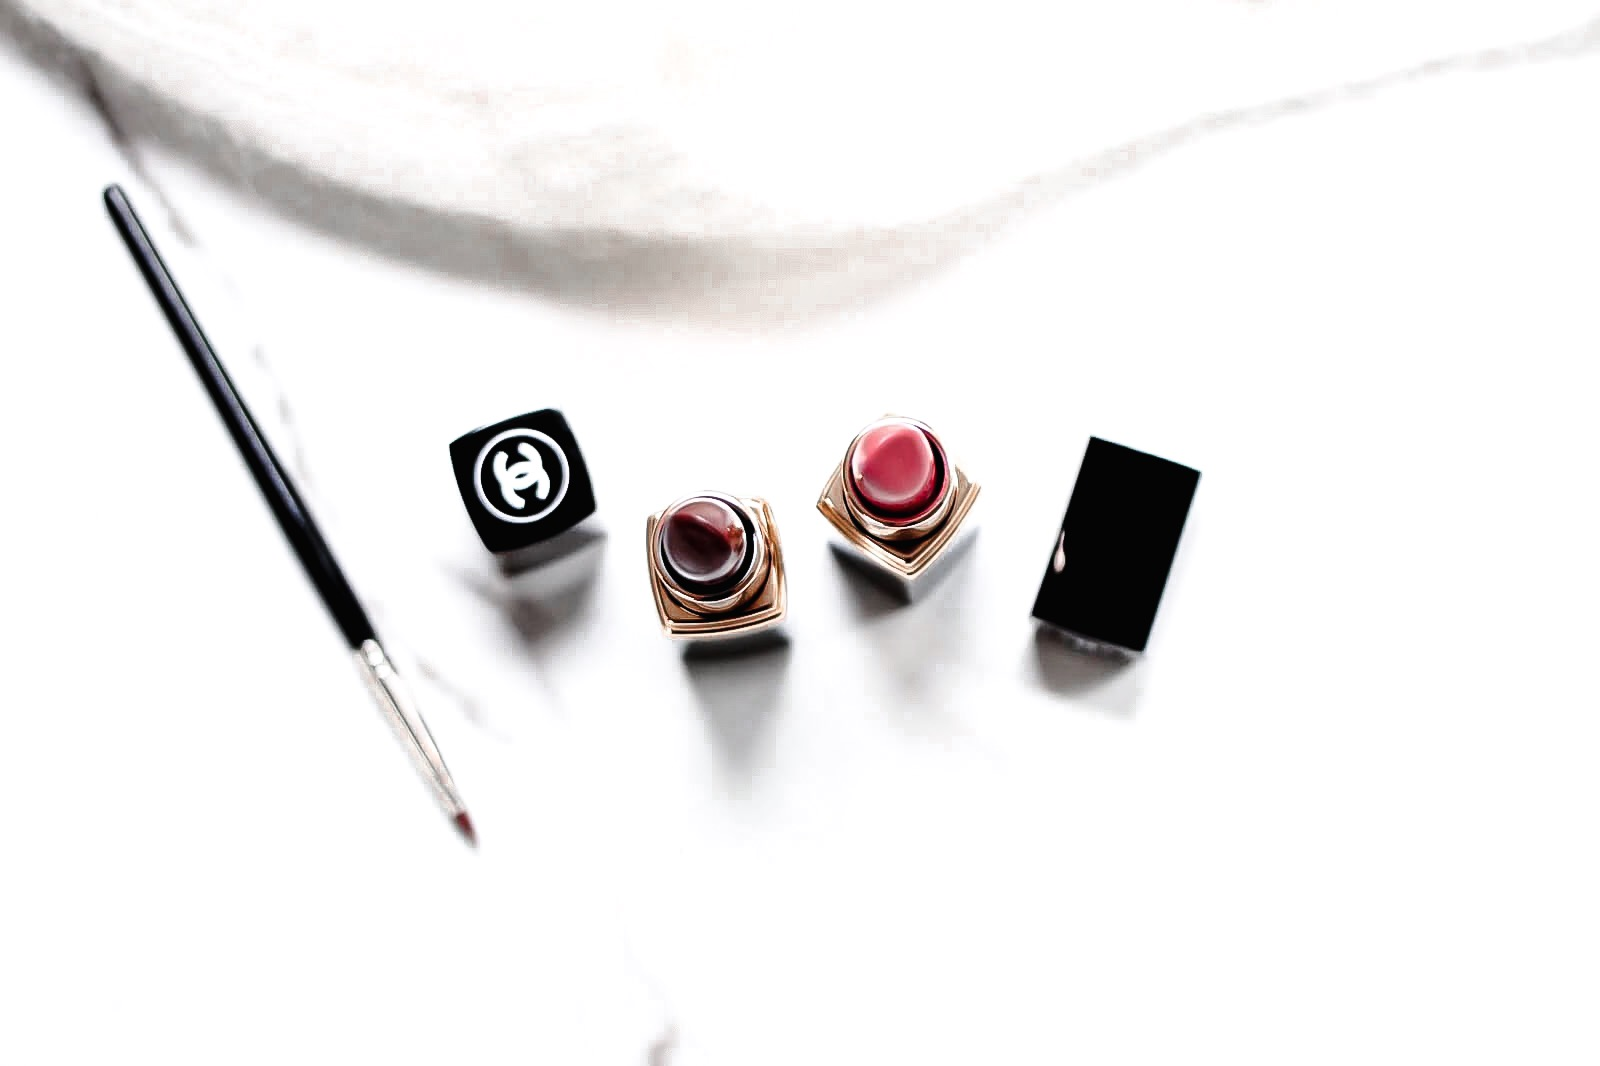 chanel-rouge-coco-ami-lover-avis-test-swatch-swatches